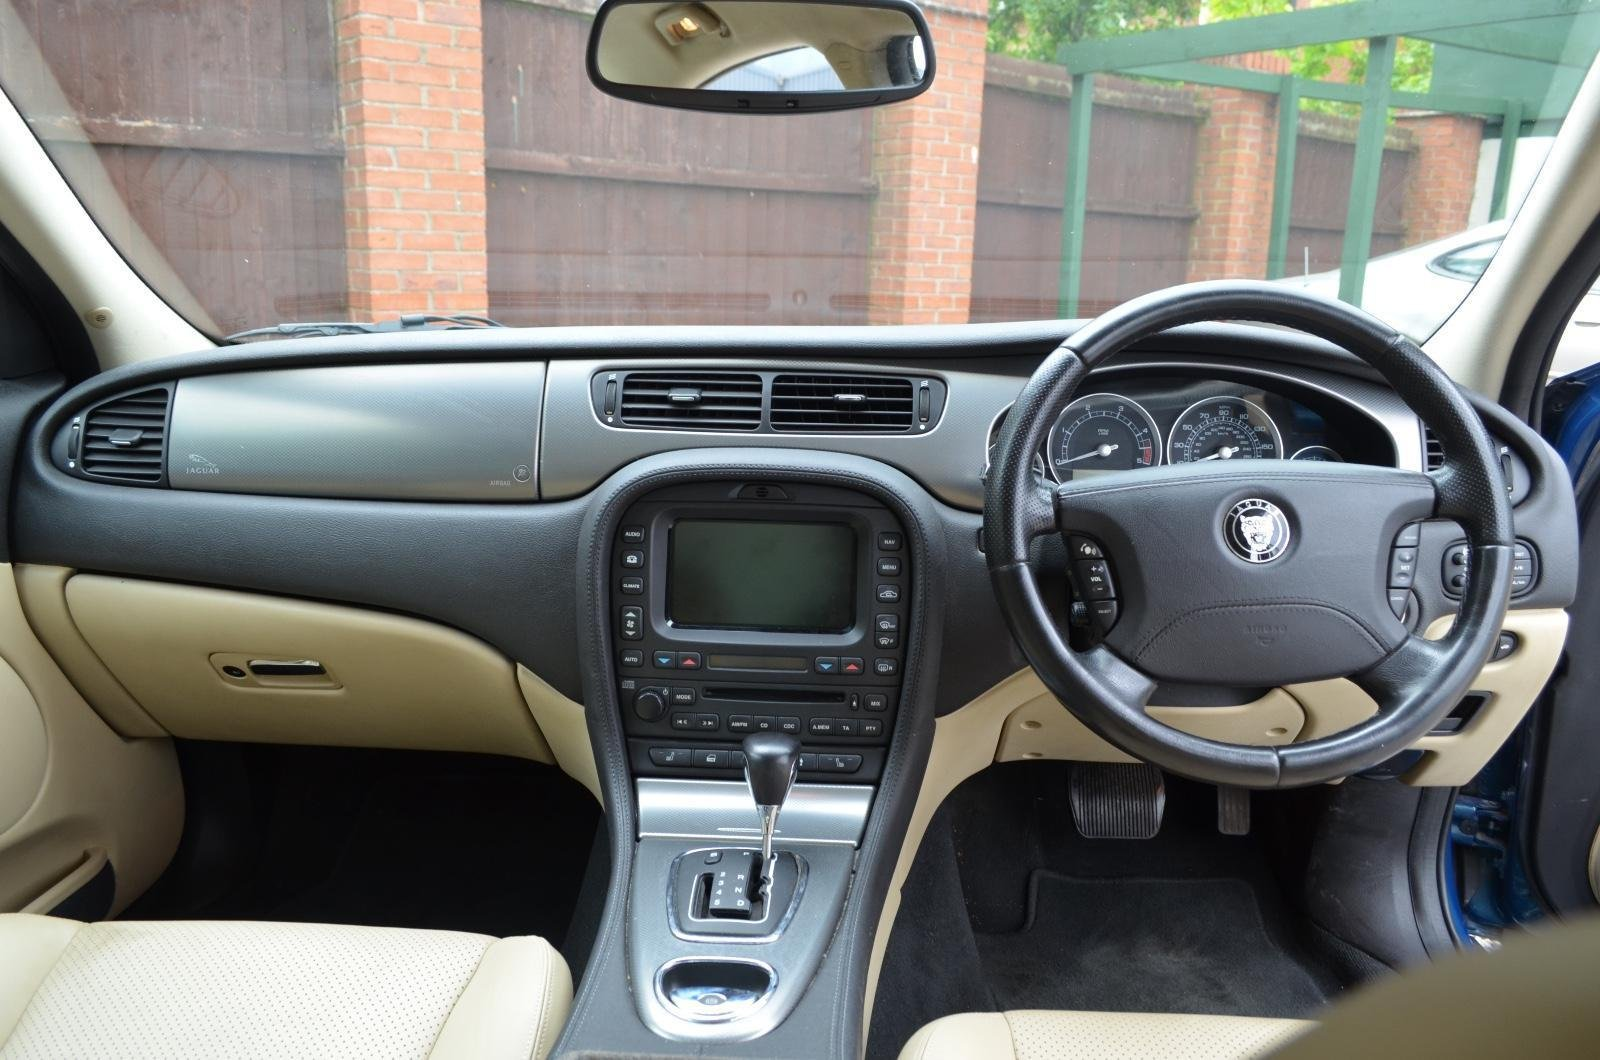 2006-56 JAGUAR S-TYPE 2.7 DIESEL TWIN TURBO  V6  For Sale (picture 5 of 6)